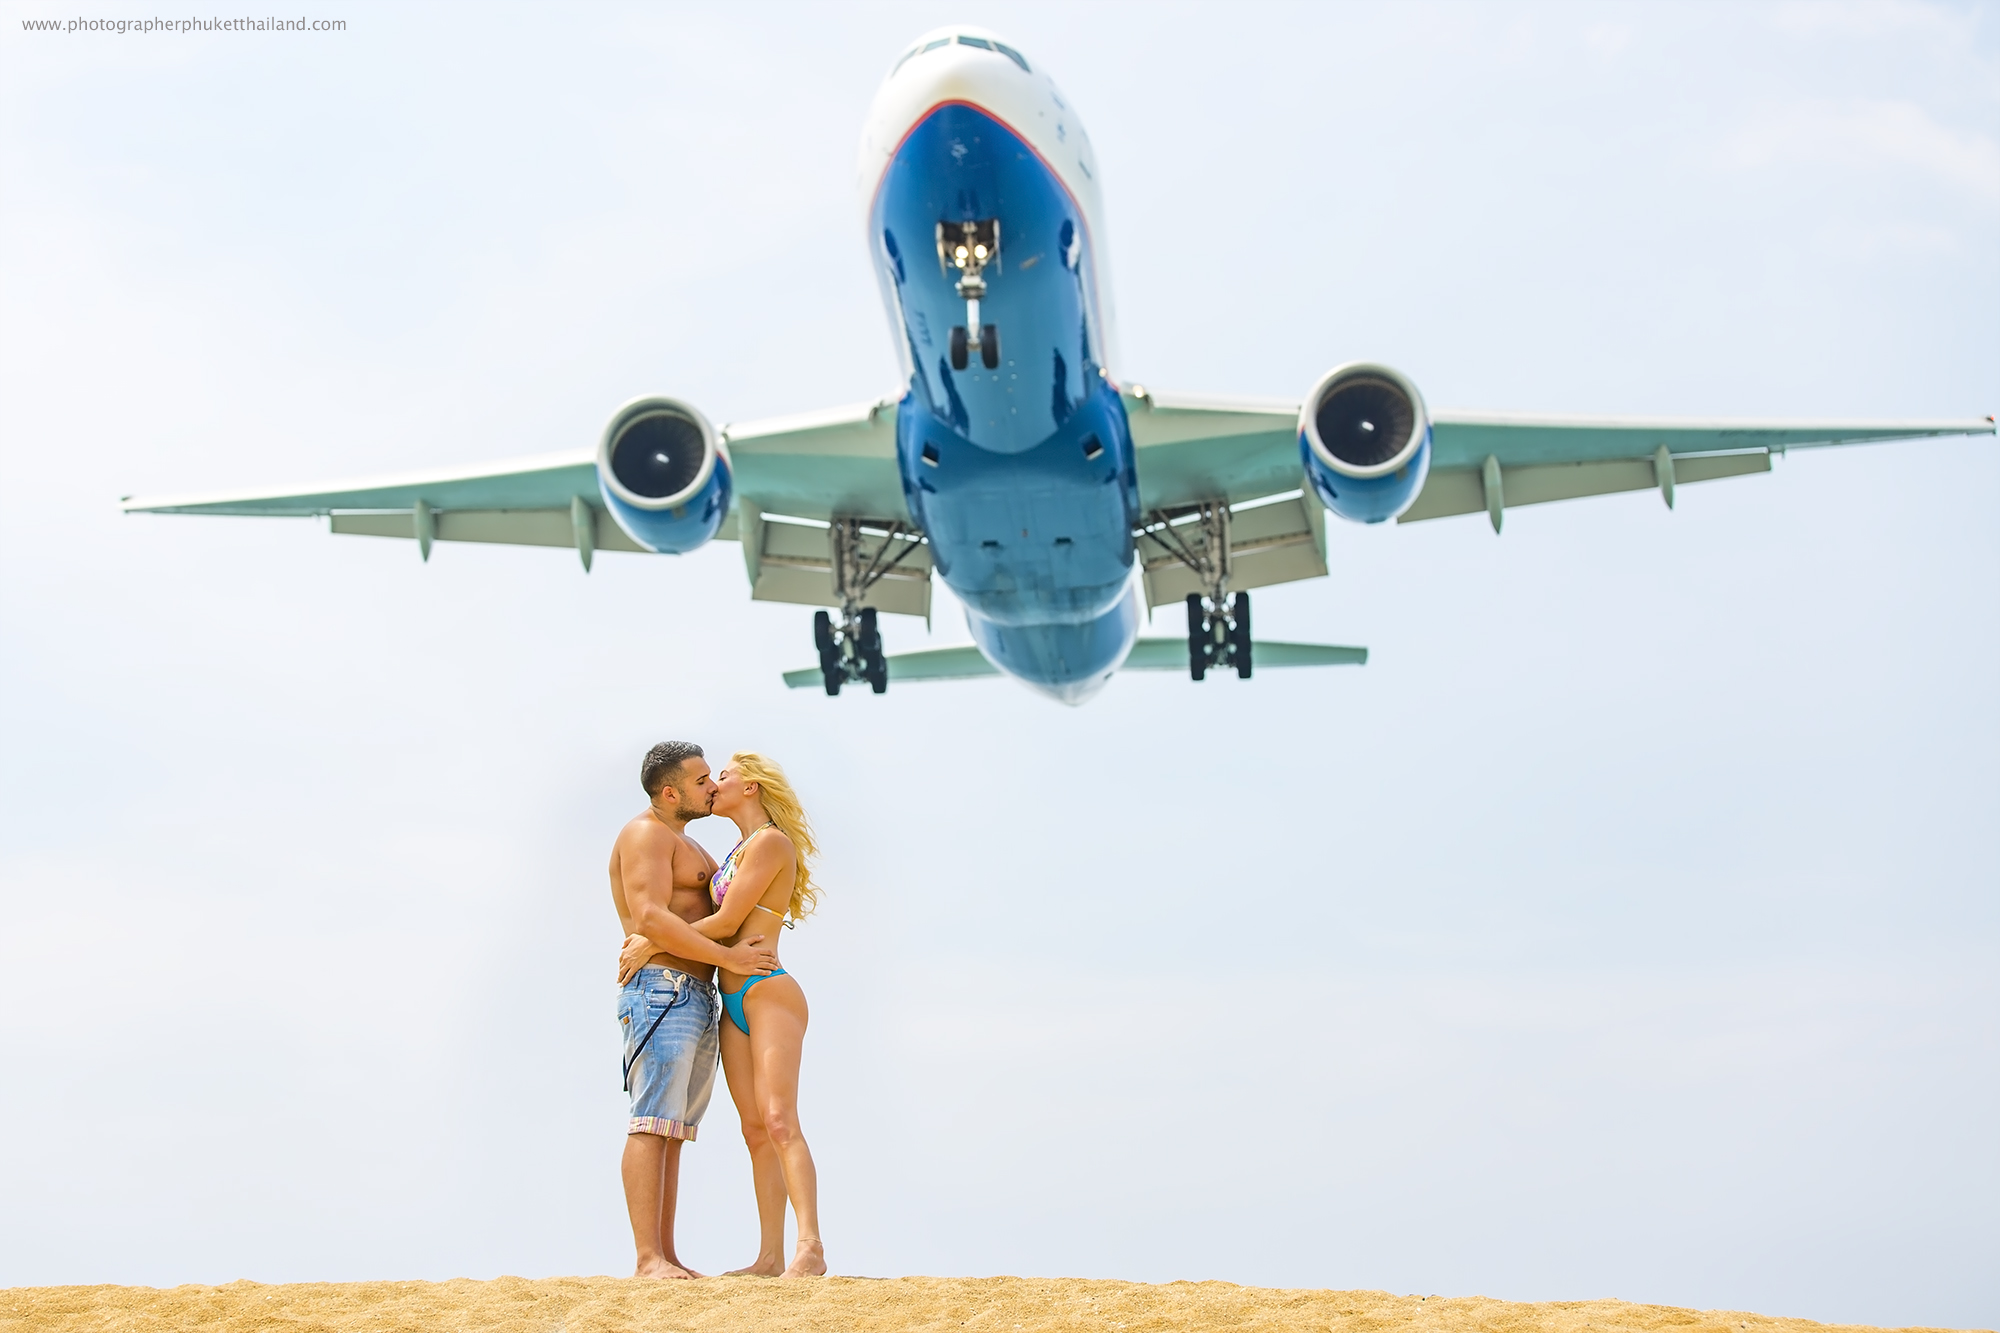 couple photoshoot with airplane at Phuket International Airport